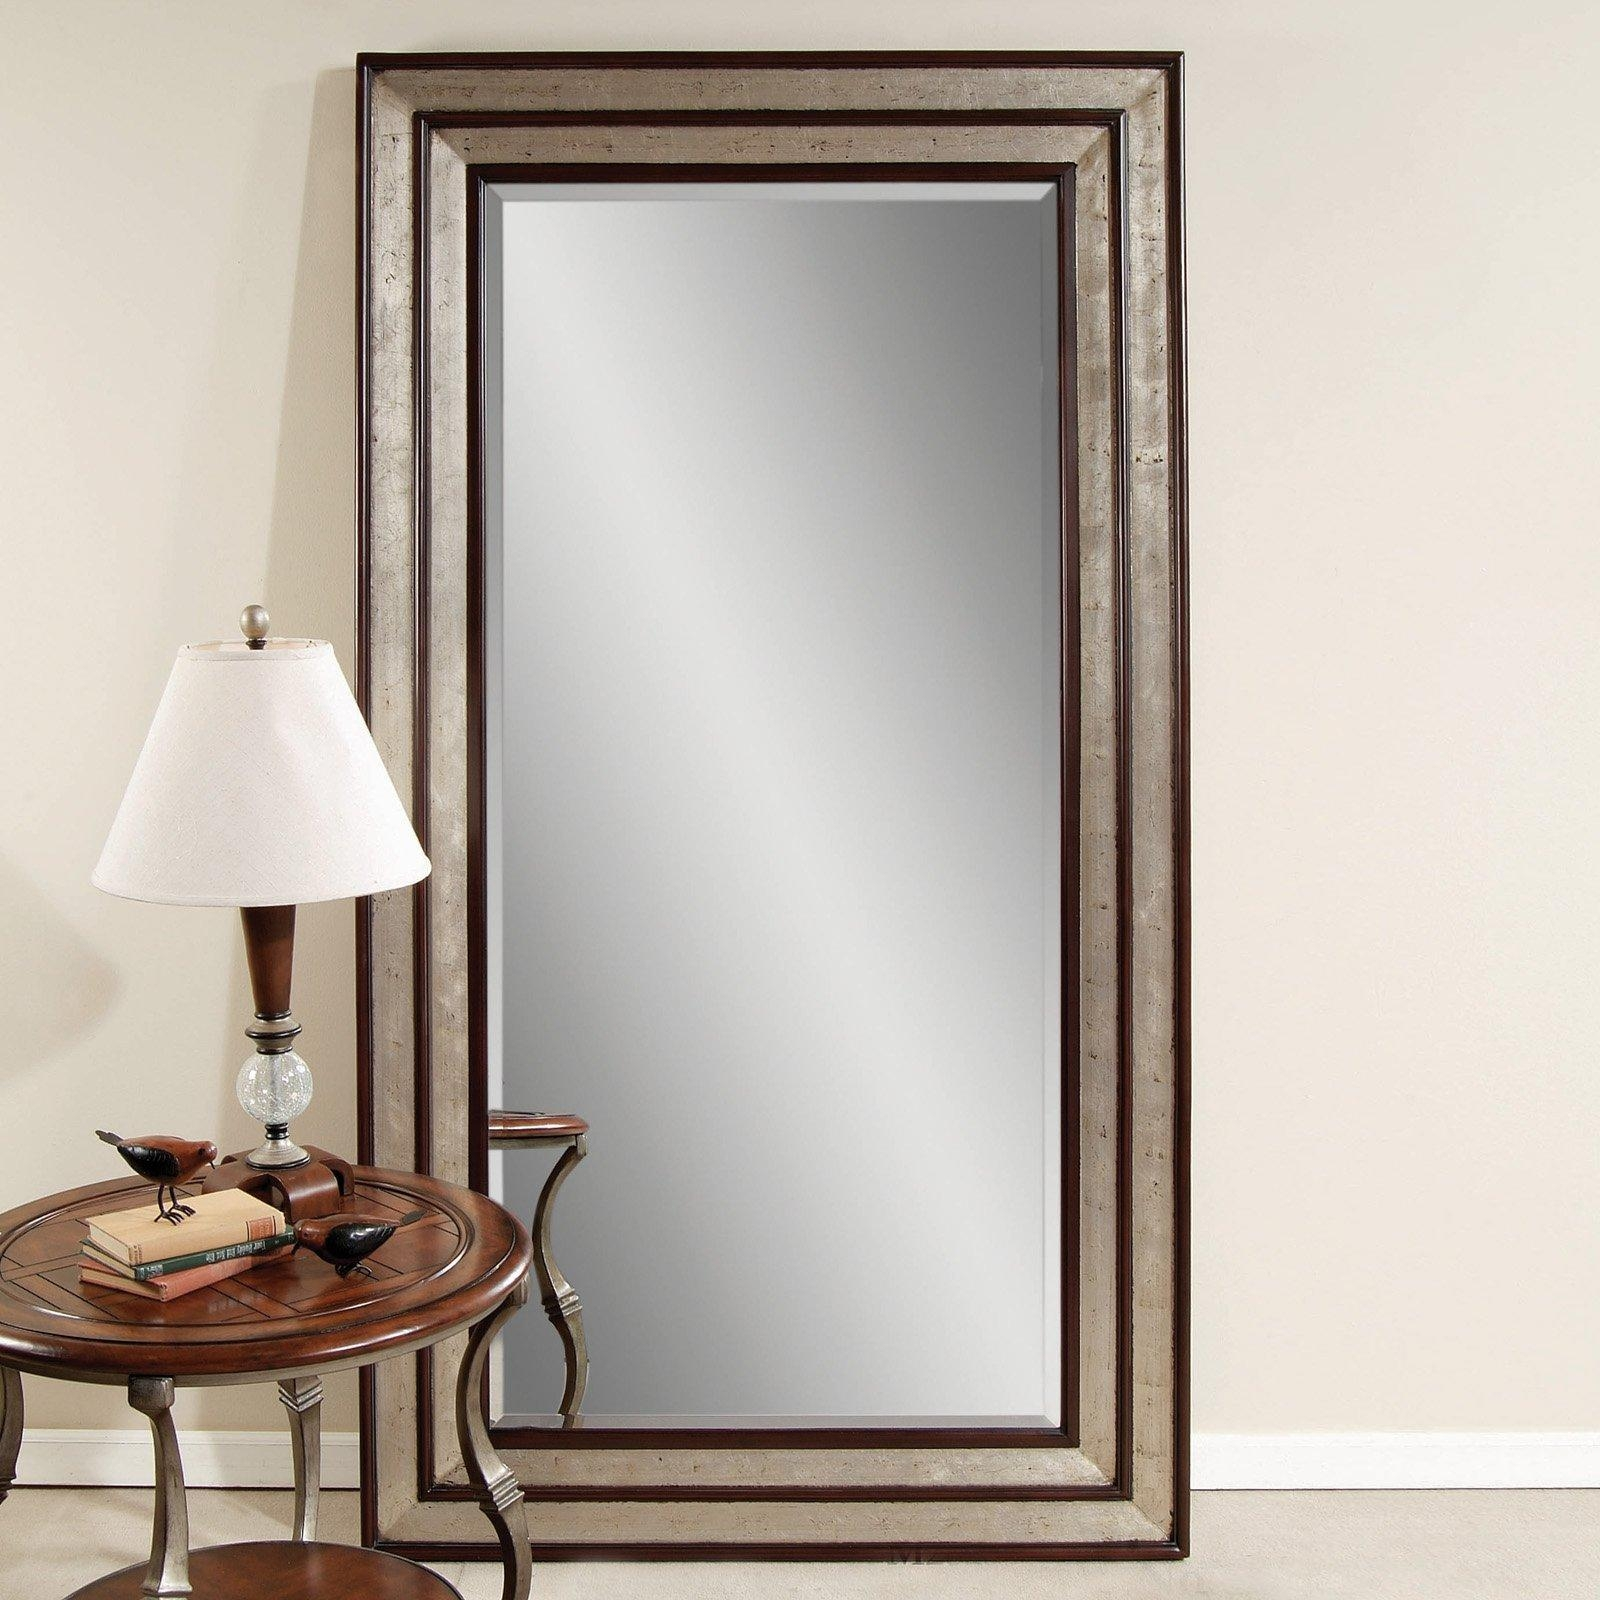 Silver Leaf & Black Accent Floor Leaner Mirror – 46W X 84H In Throughout Framed Floor Mirrors (View 7 of 20)